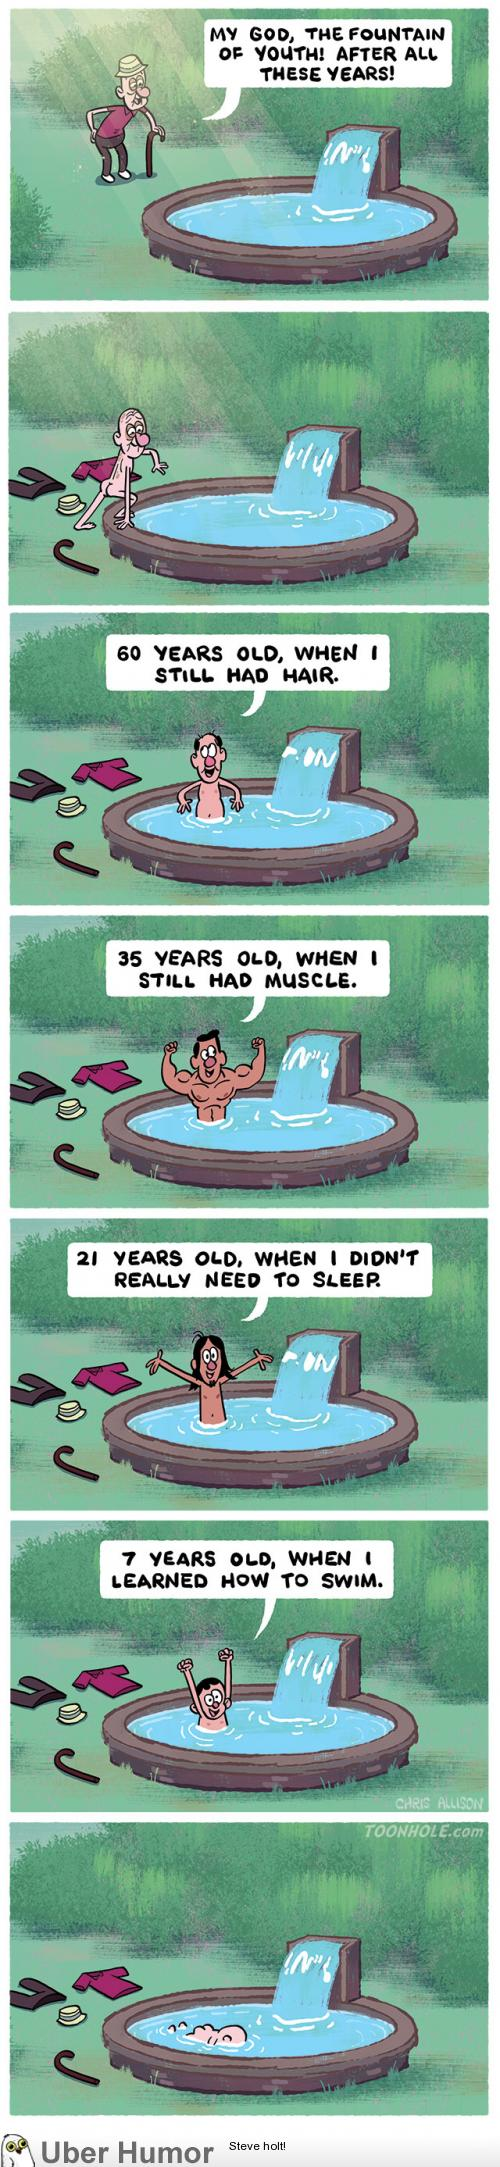 Funny water fountain quotes - Funny Pictures